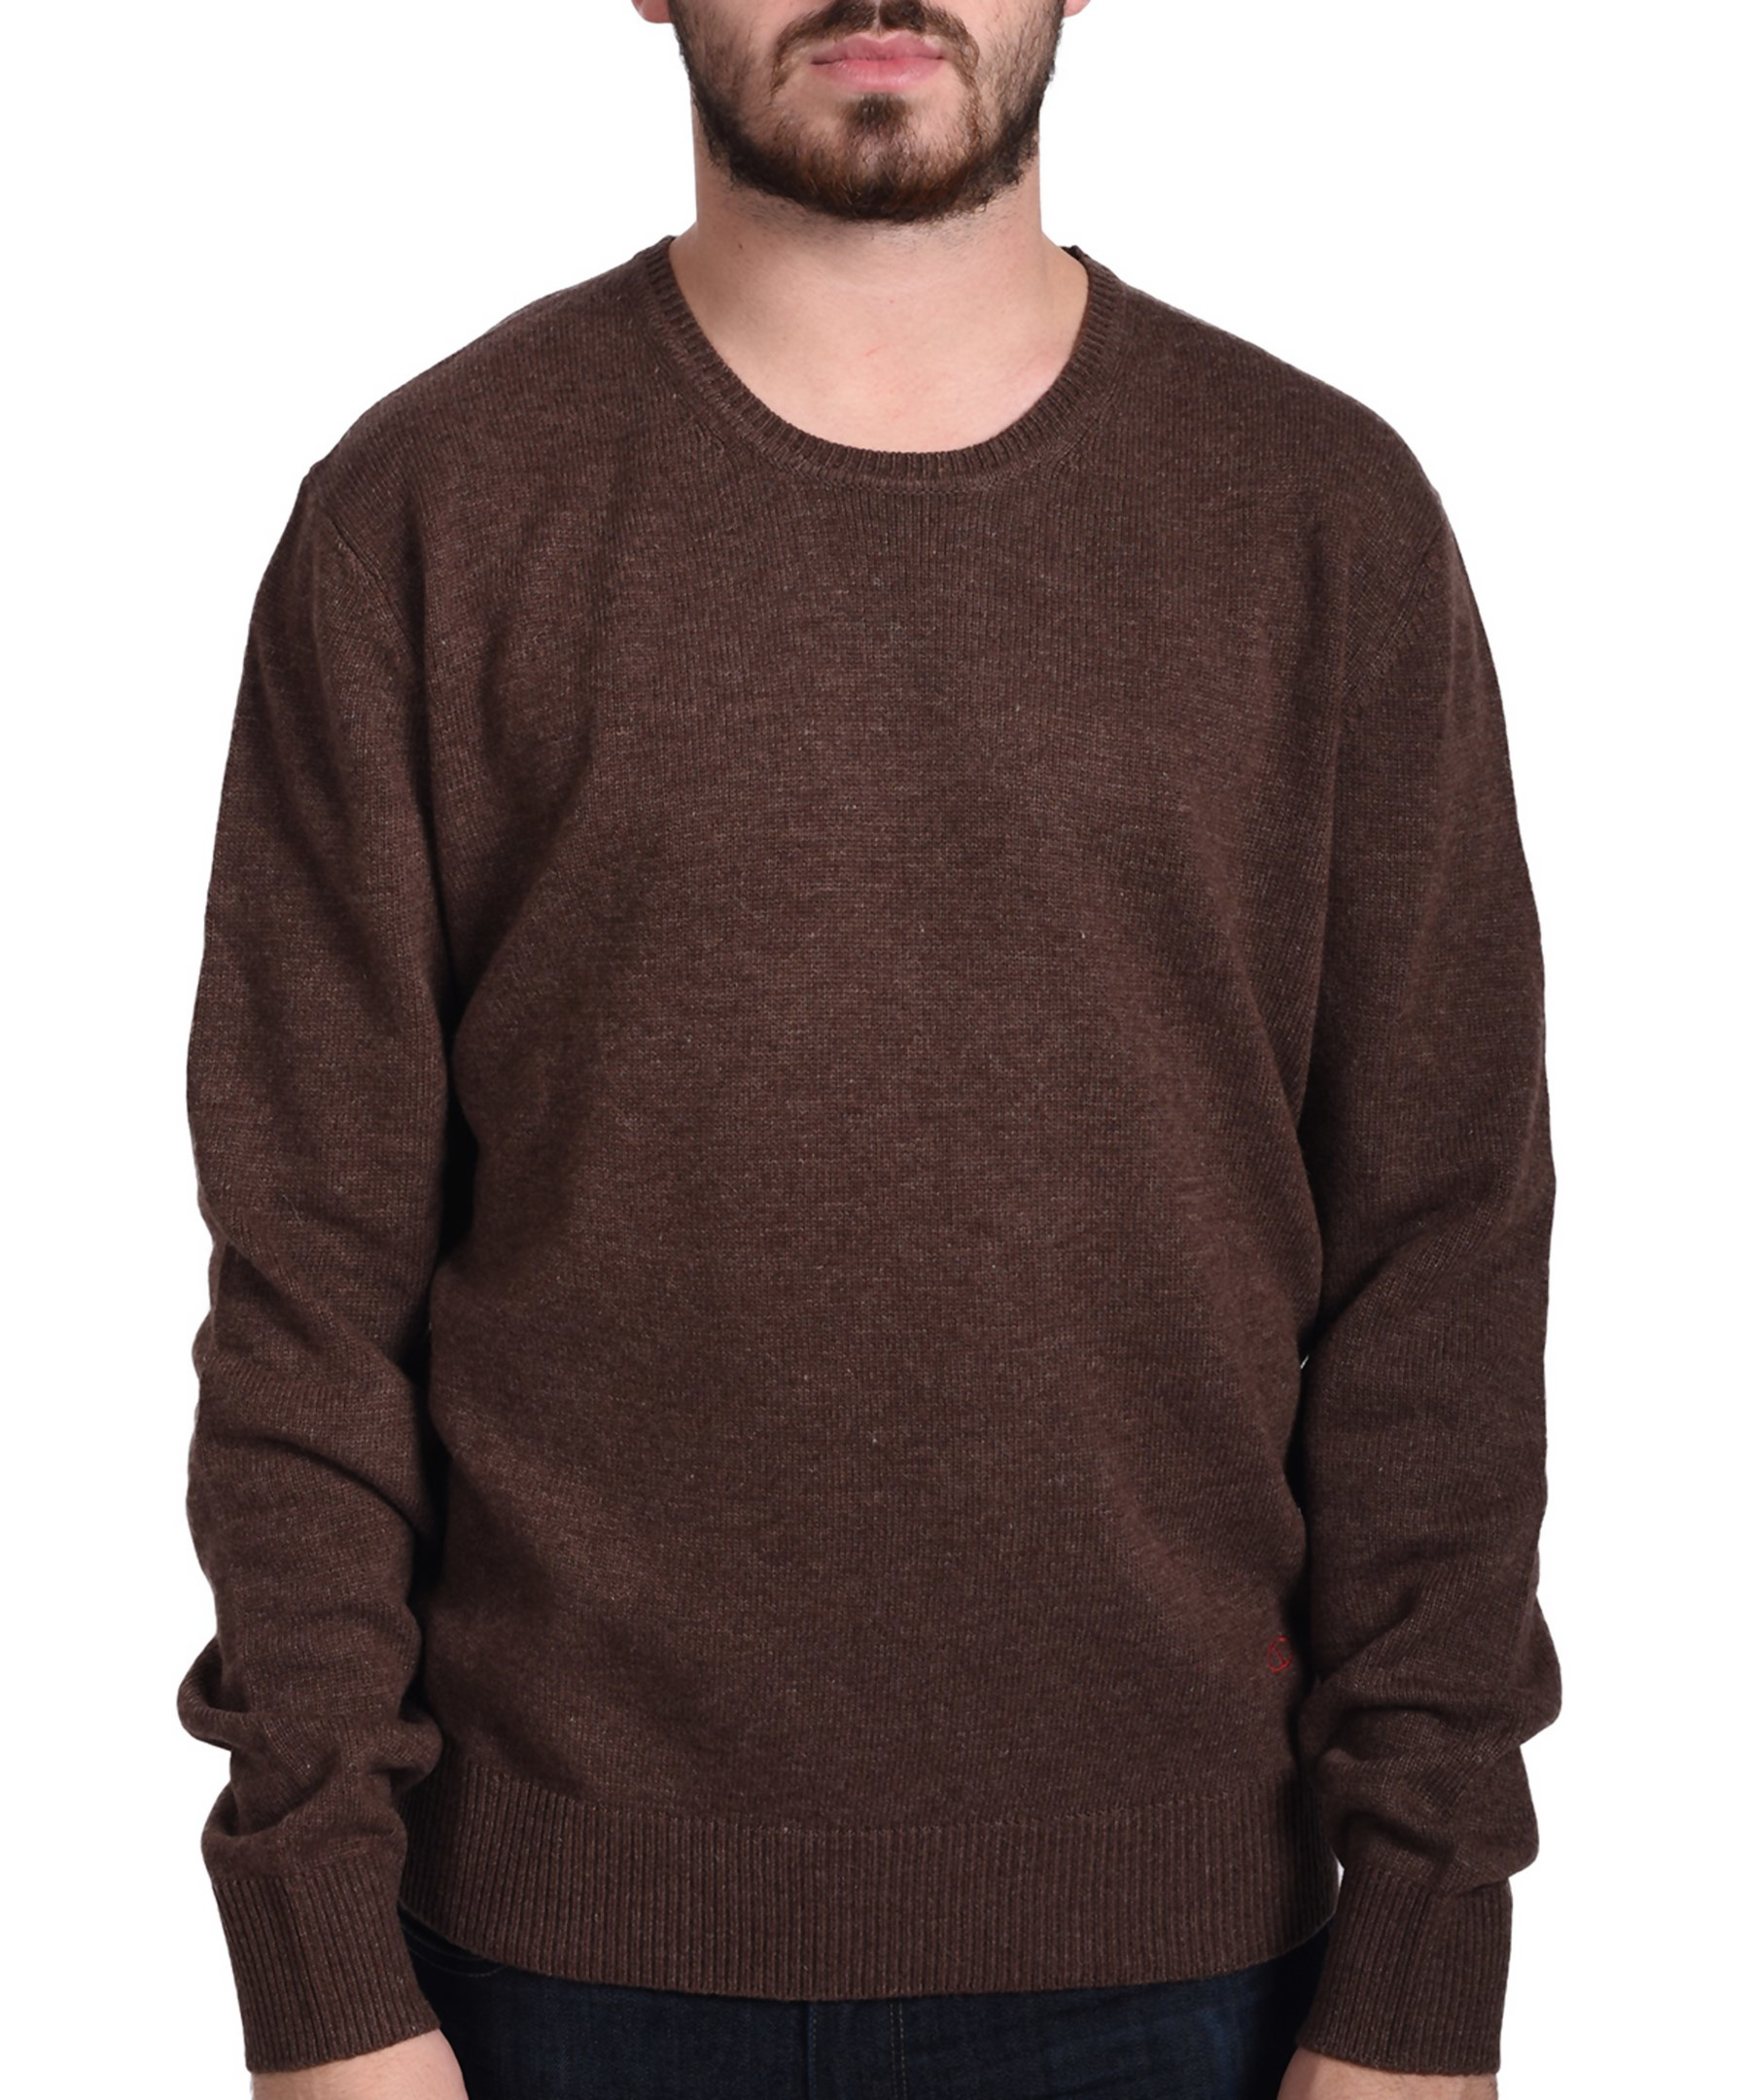 Find great deals on eBay for brown crewneck sweatshirt. Shop with confidence.